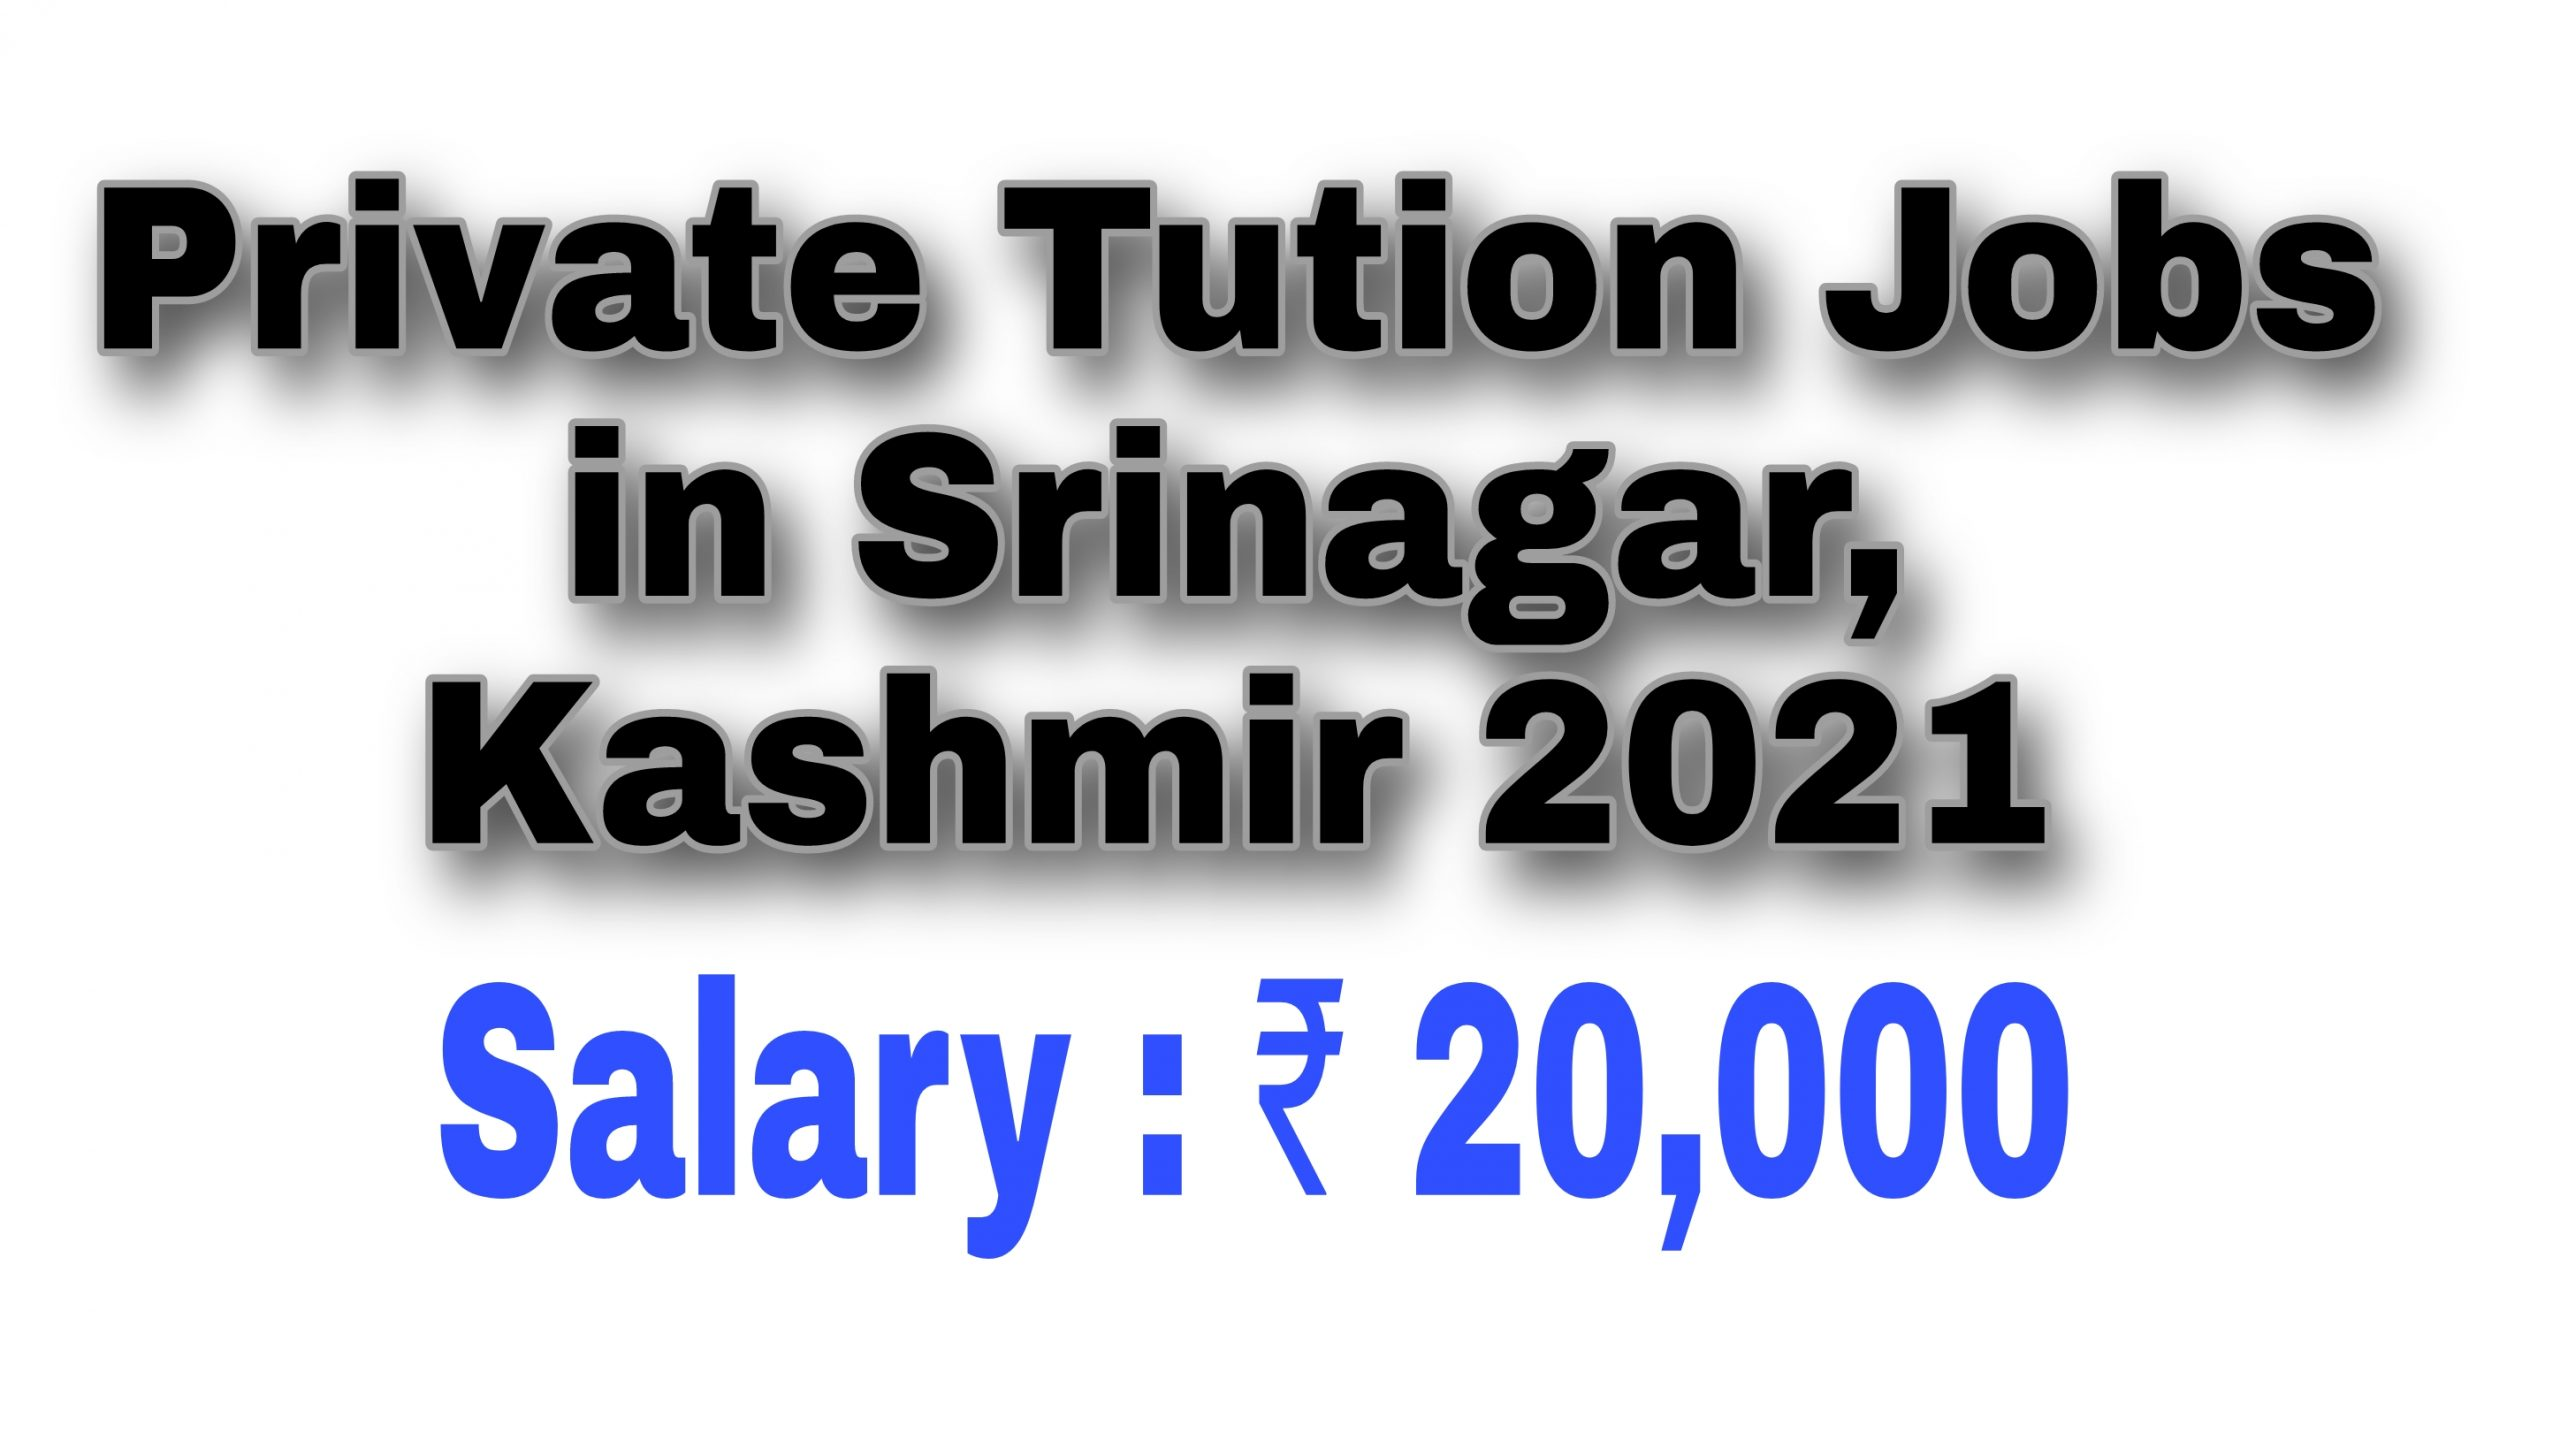 Home tution jobs in srinagar Private tution Jobs Near me Kashmir